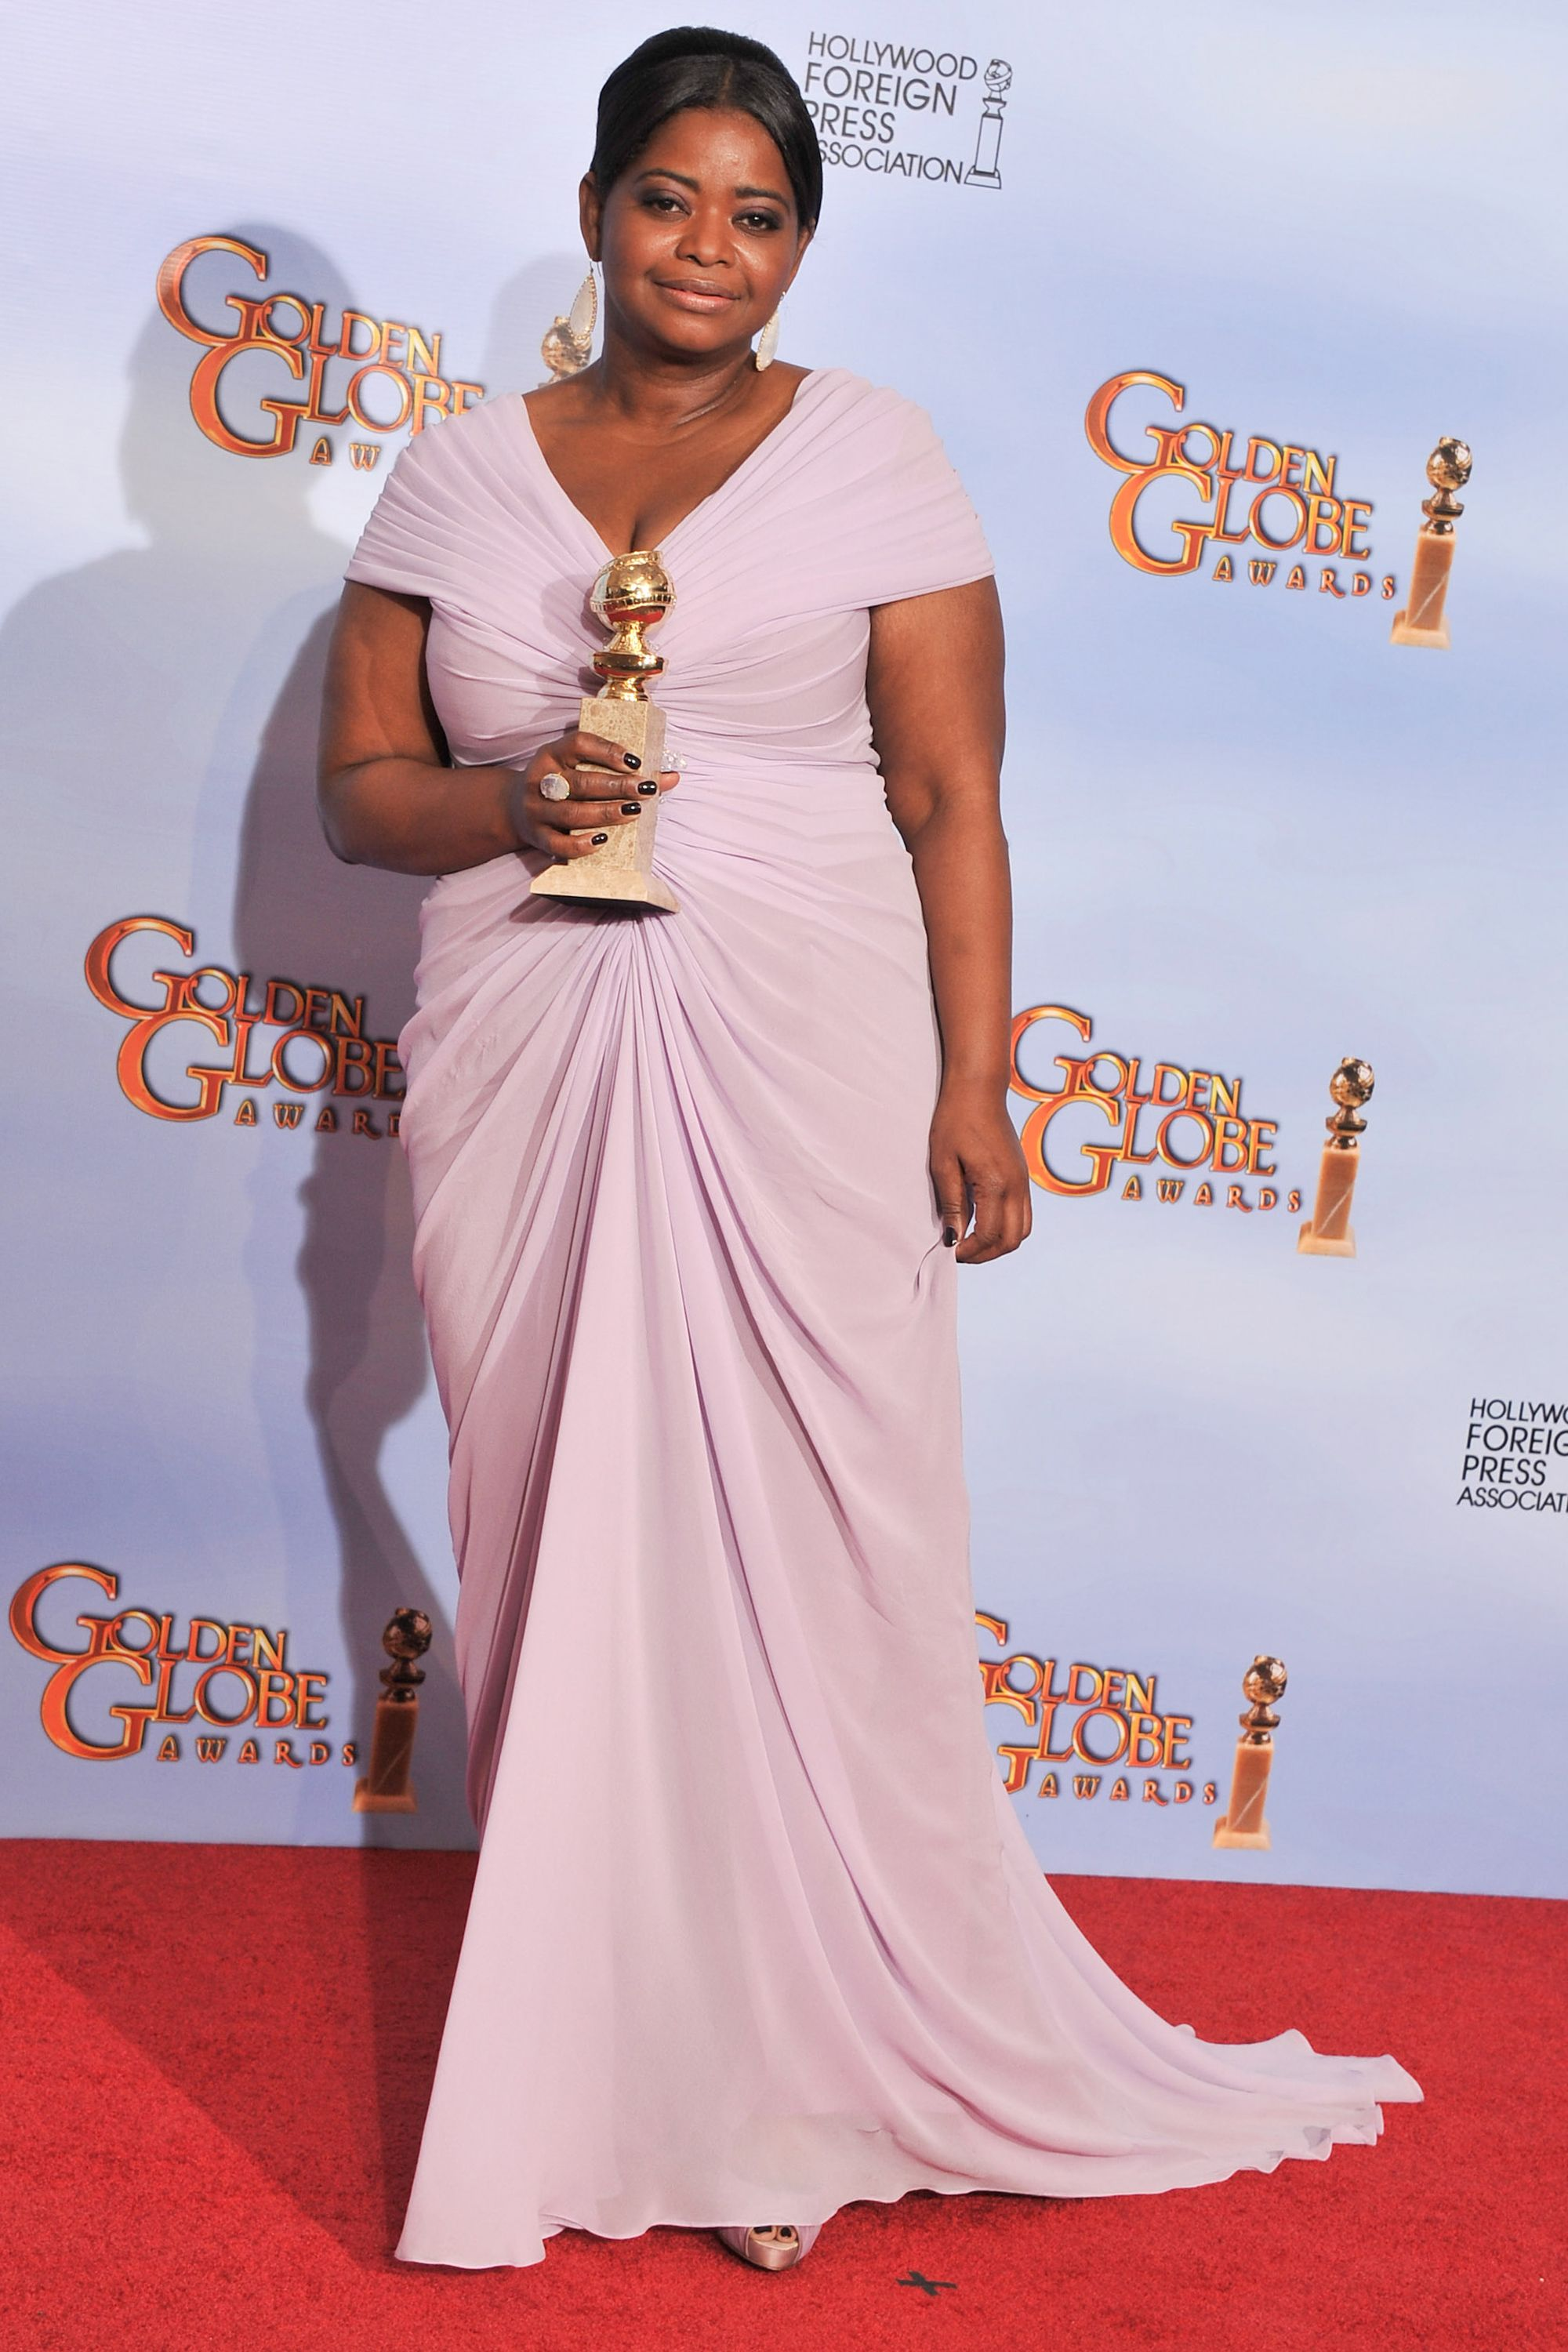 Octavia Spencer at the Golden Globes